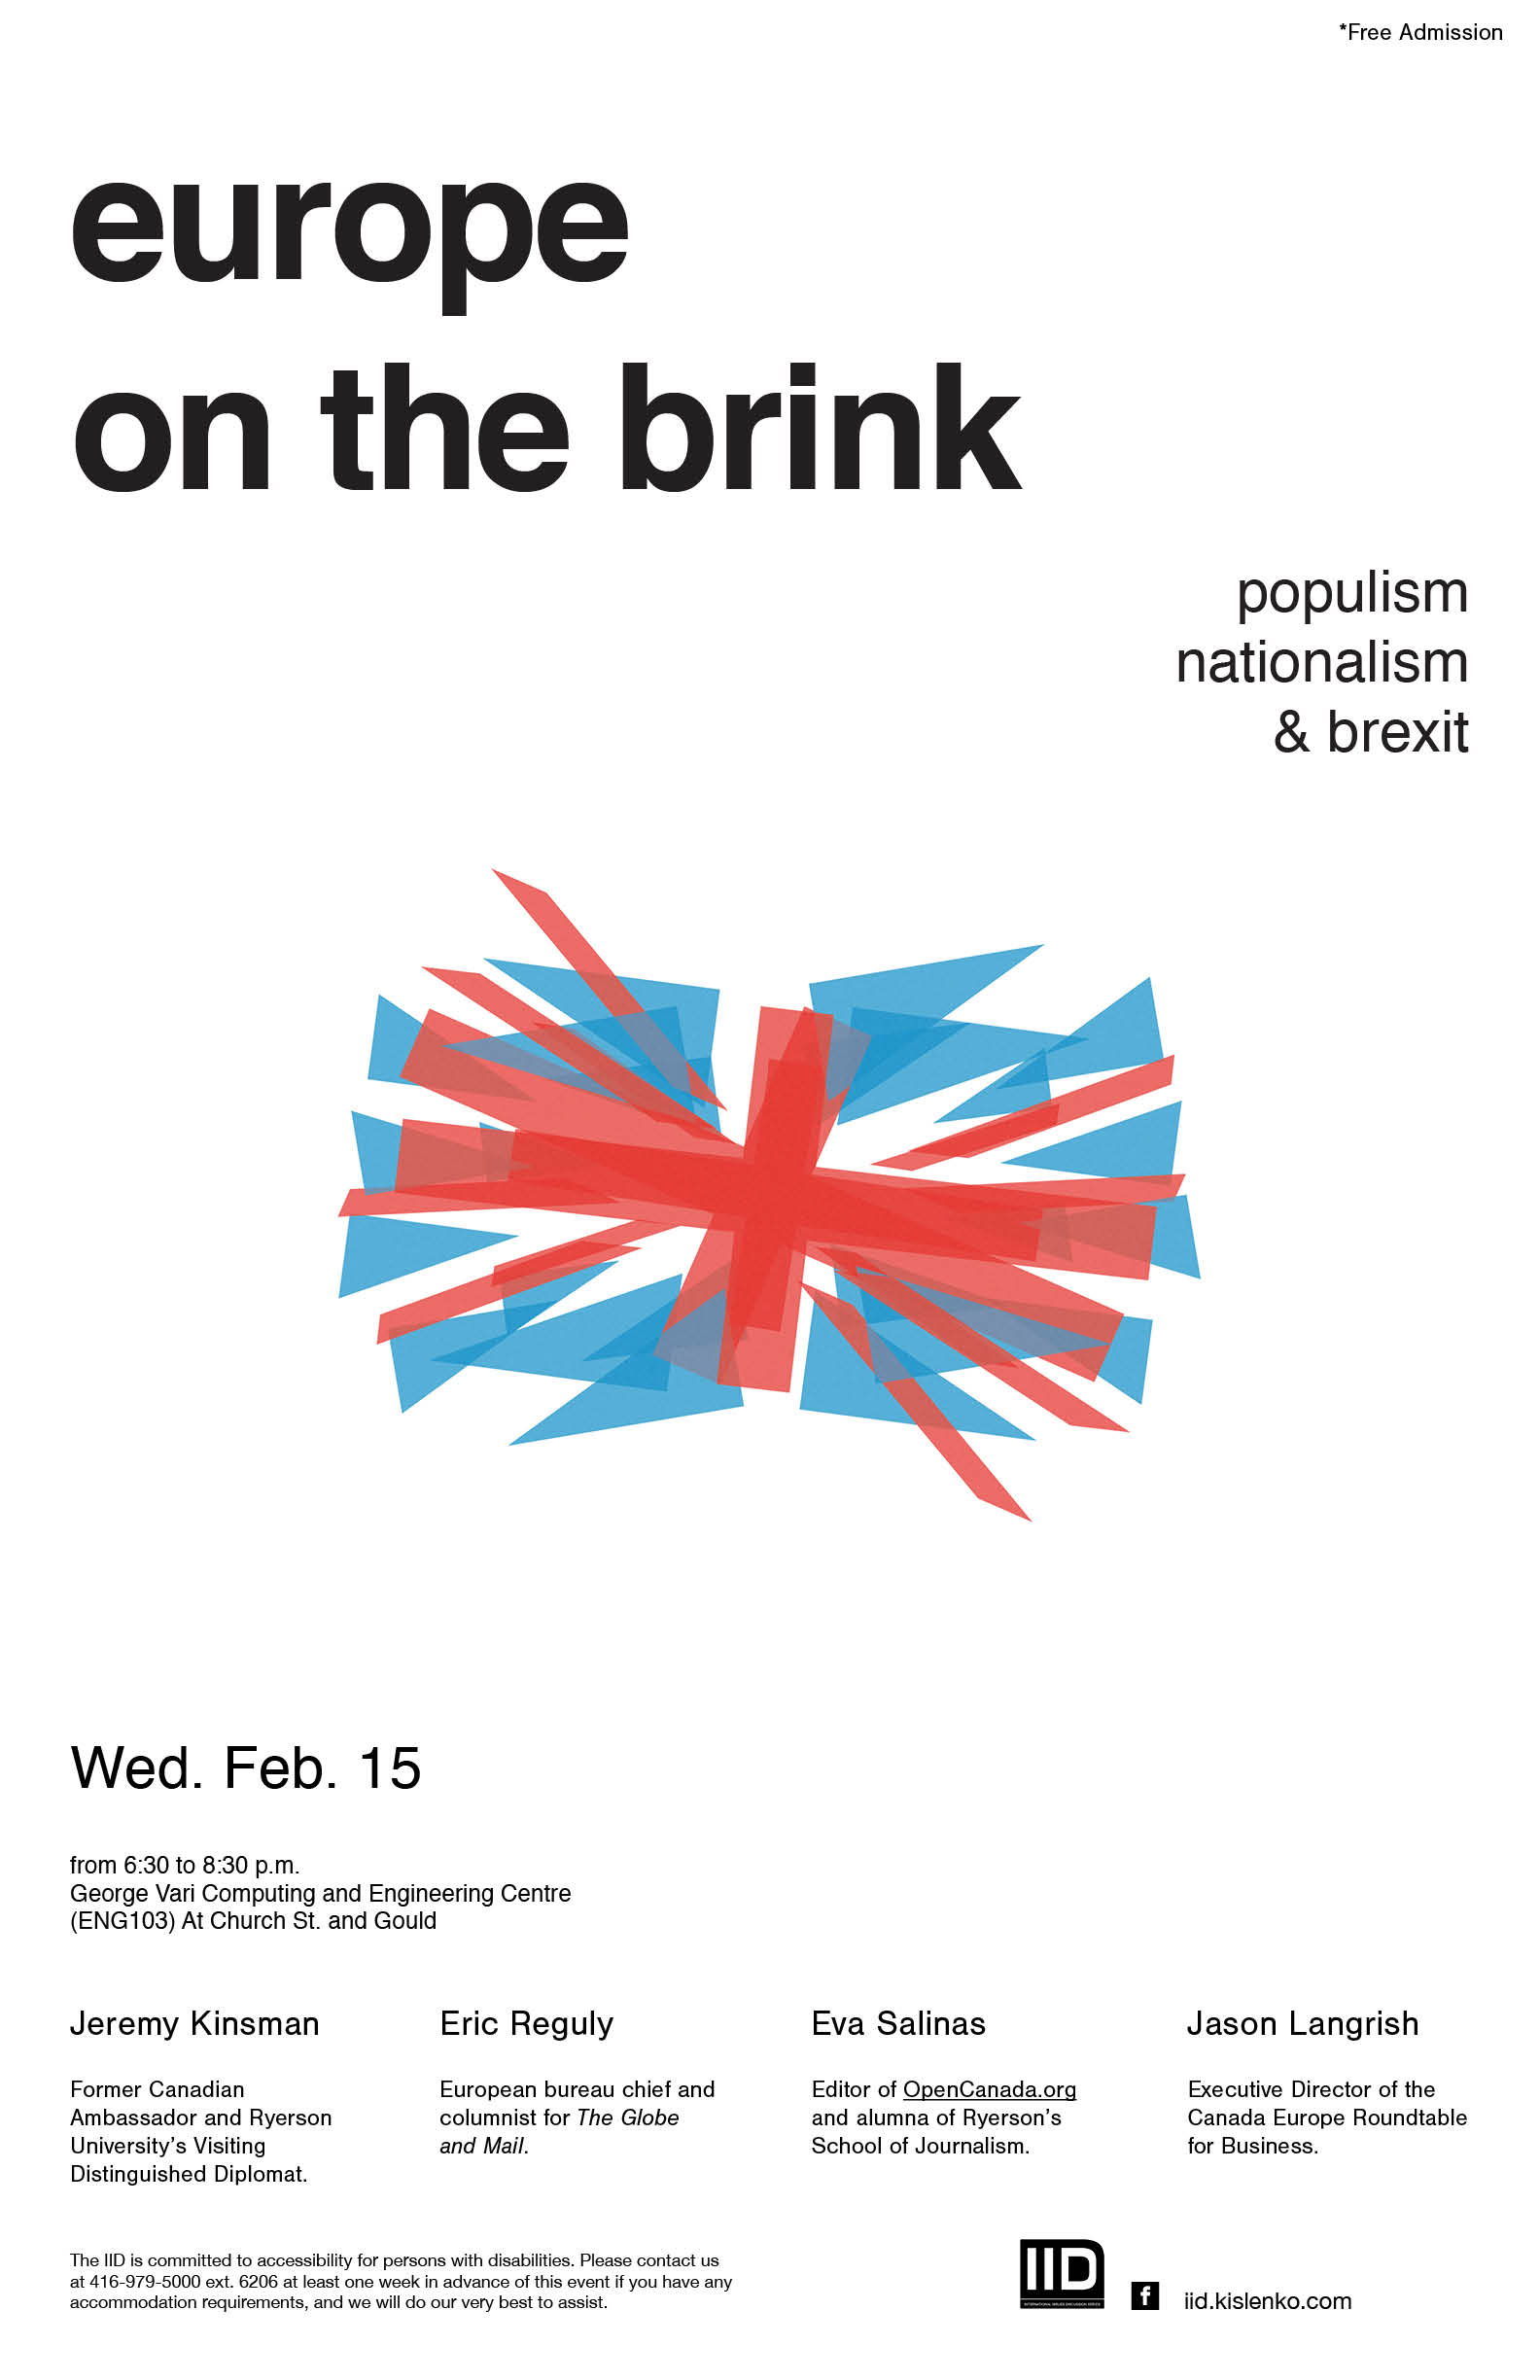 Europe on the Brink: Populism, Nationalism & Brexit – Wednesday, February 15th, 2017